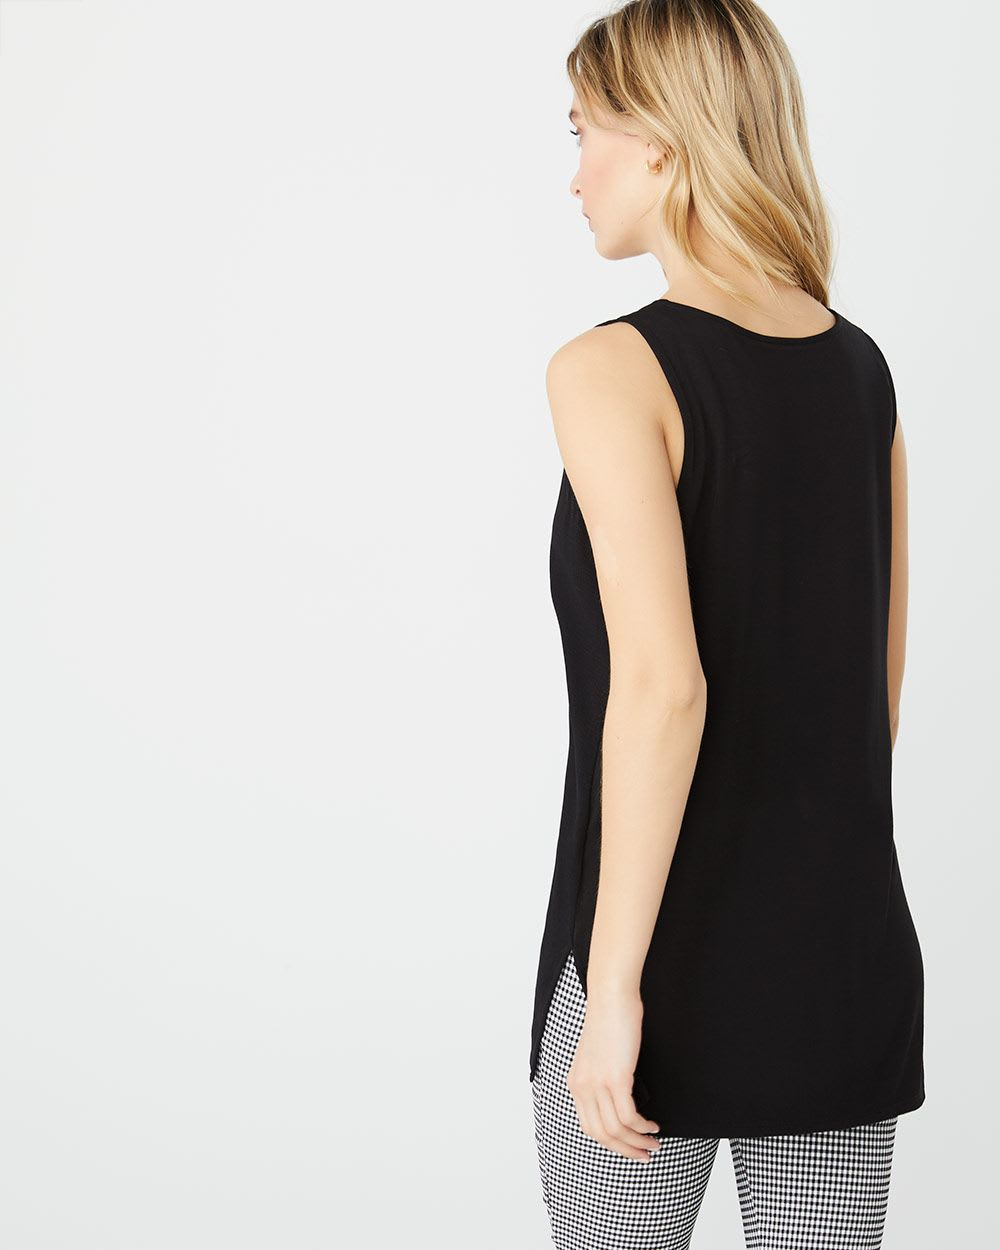 C&G Solid Mixed media Sleeveless tunic t-shirt